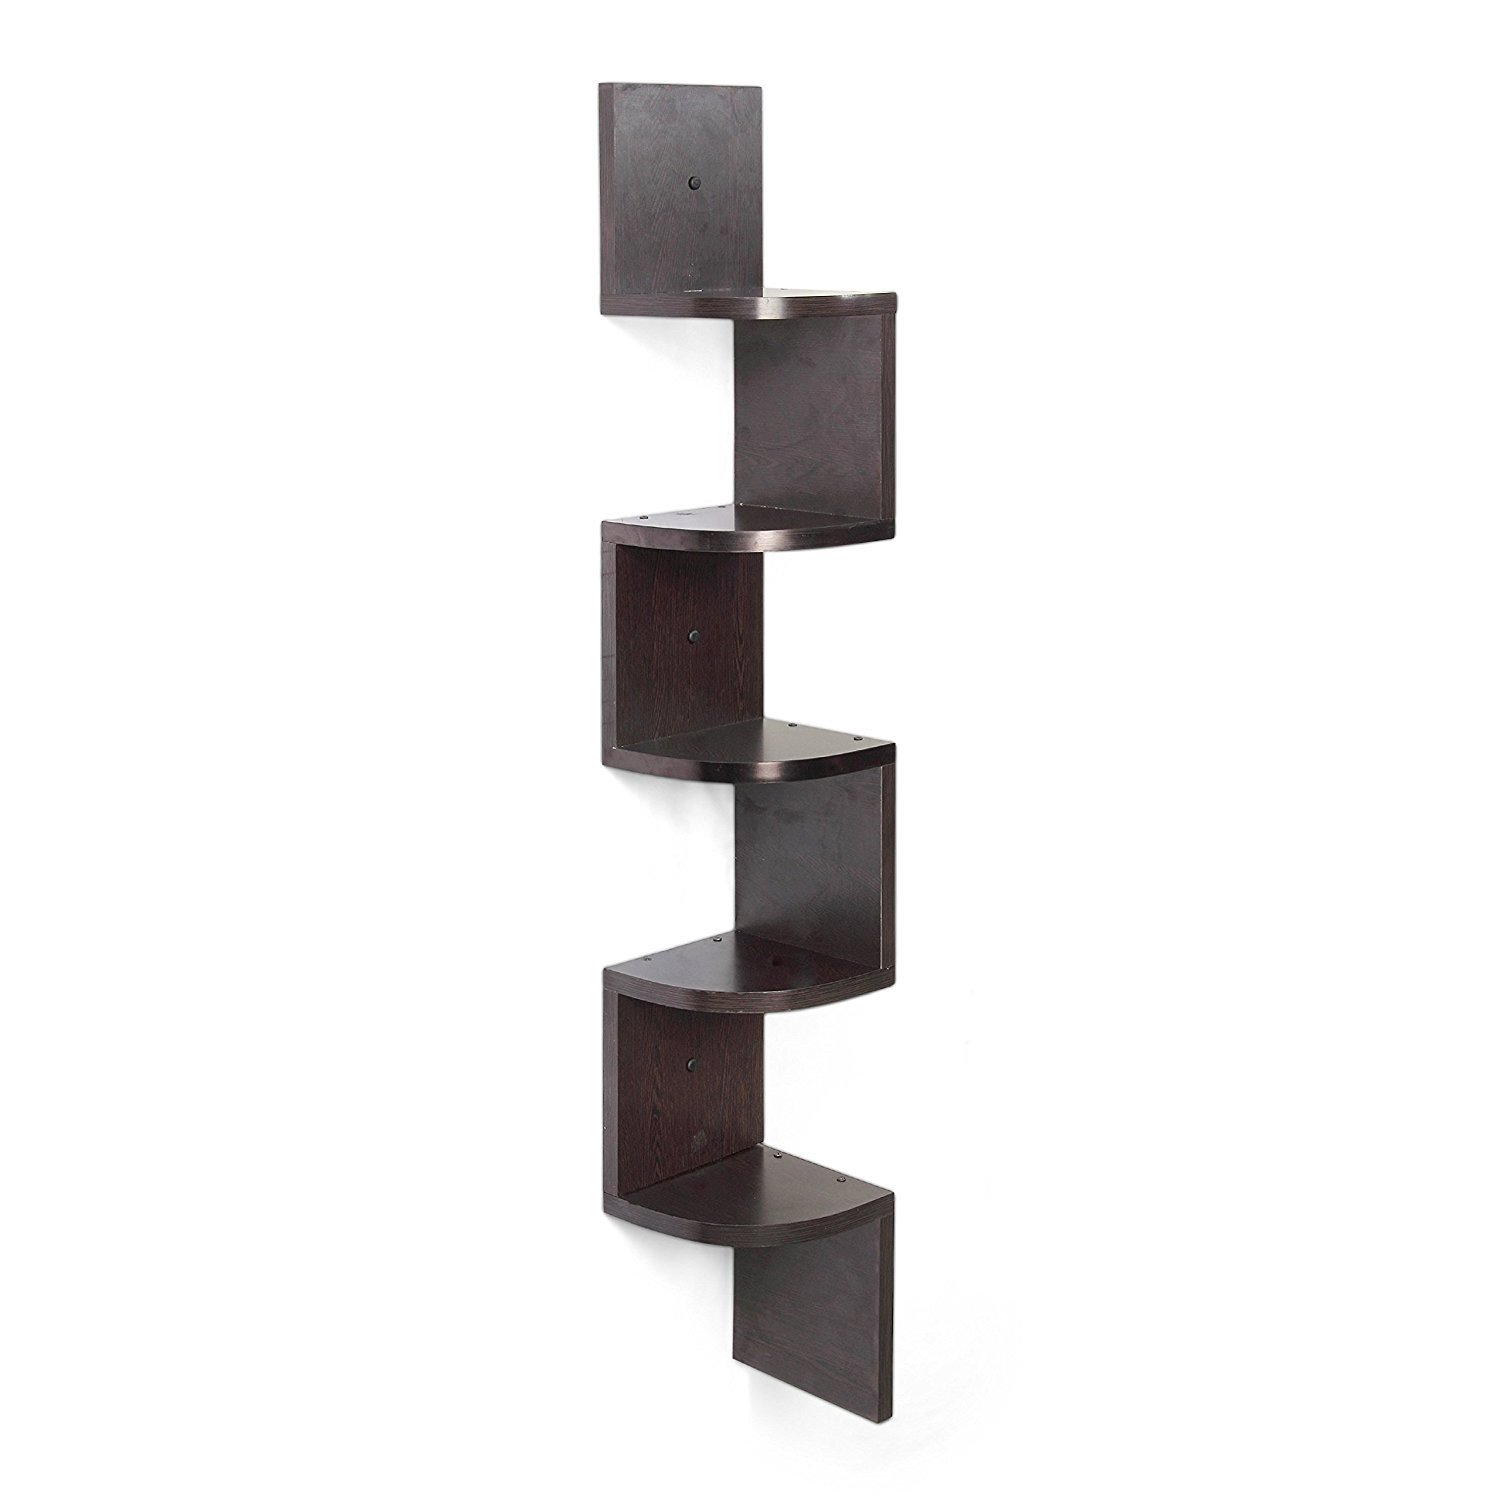 Orril Zigzag Corner Wall Mount Shelf Unit Brown Amazon